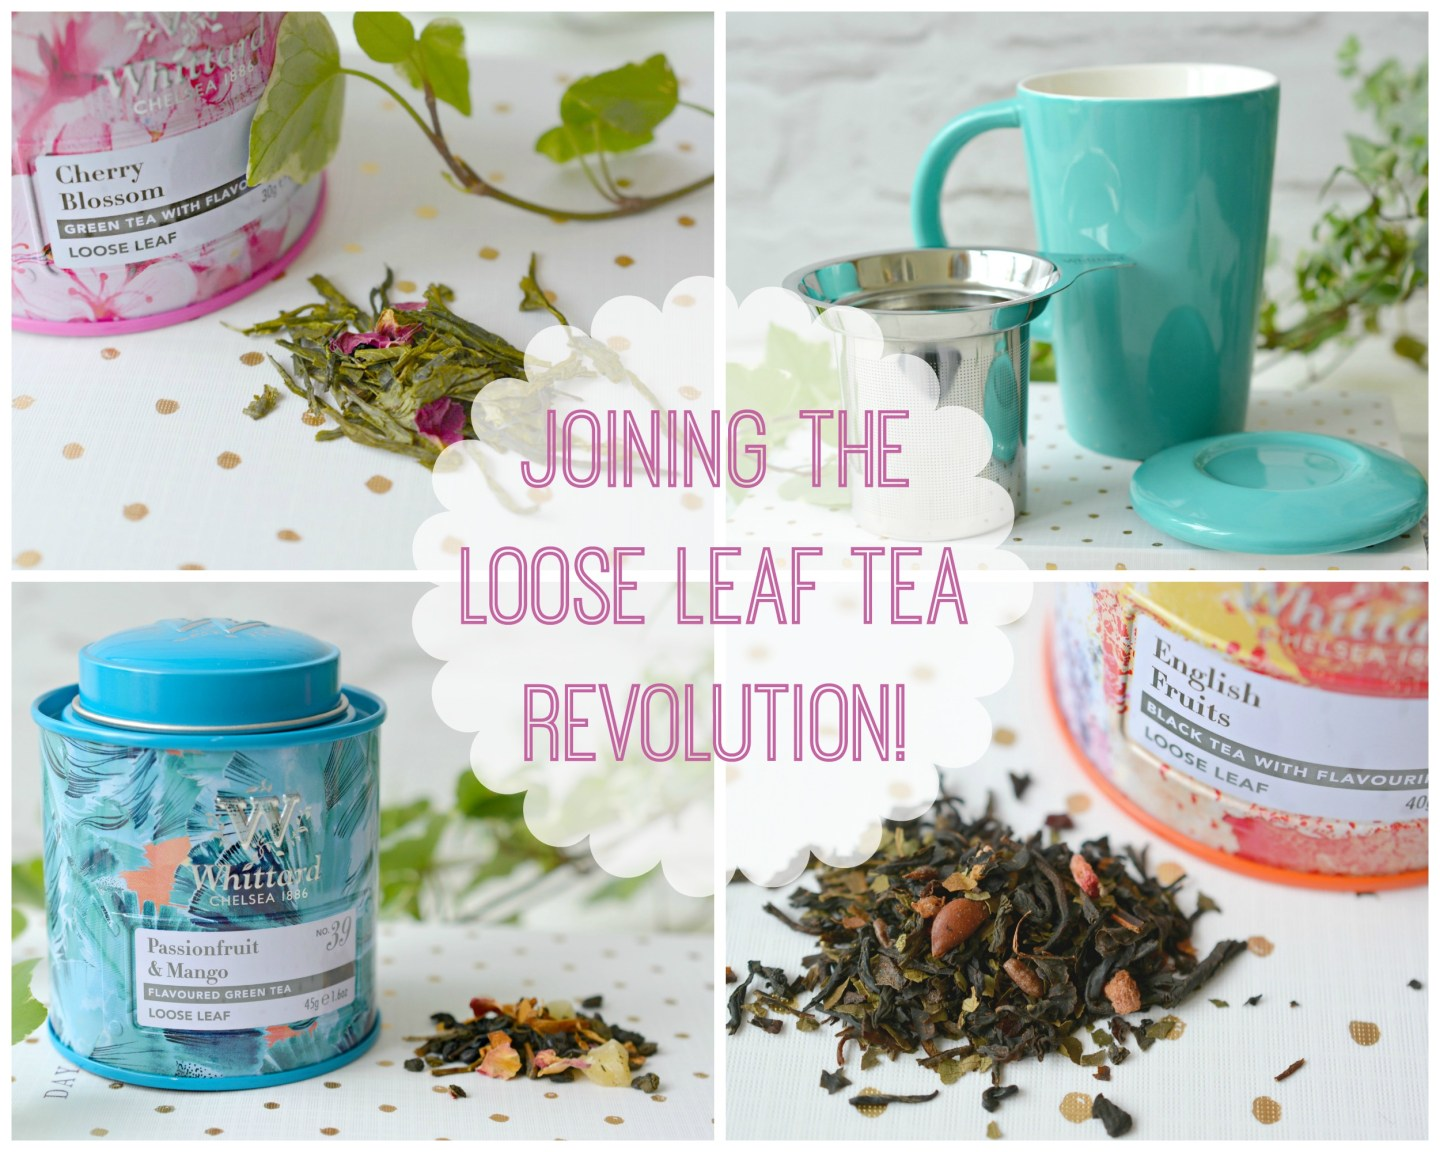 Joining the Loose Leaf Tea Revolution!